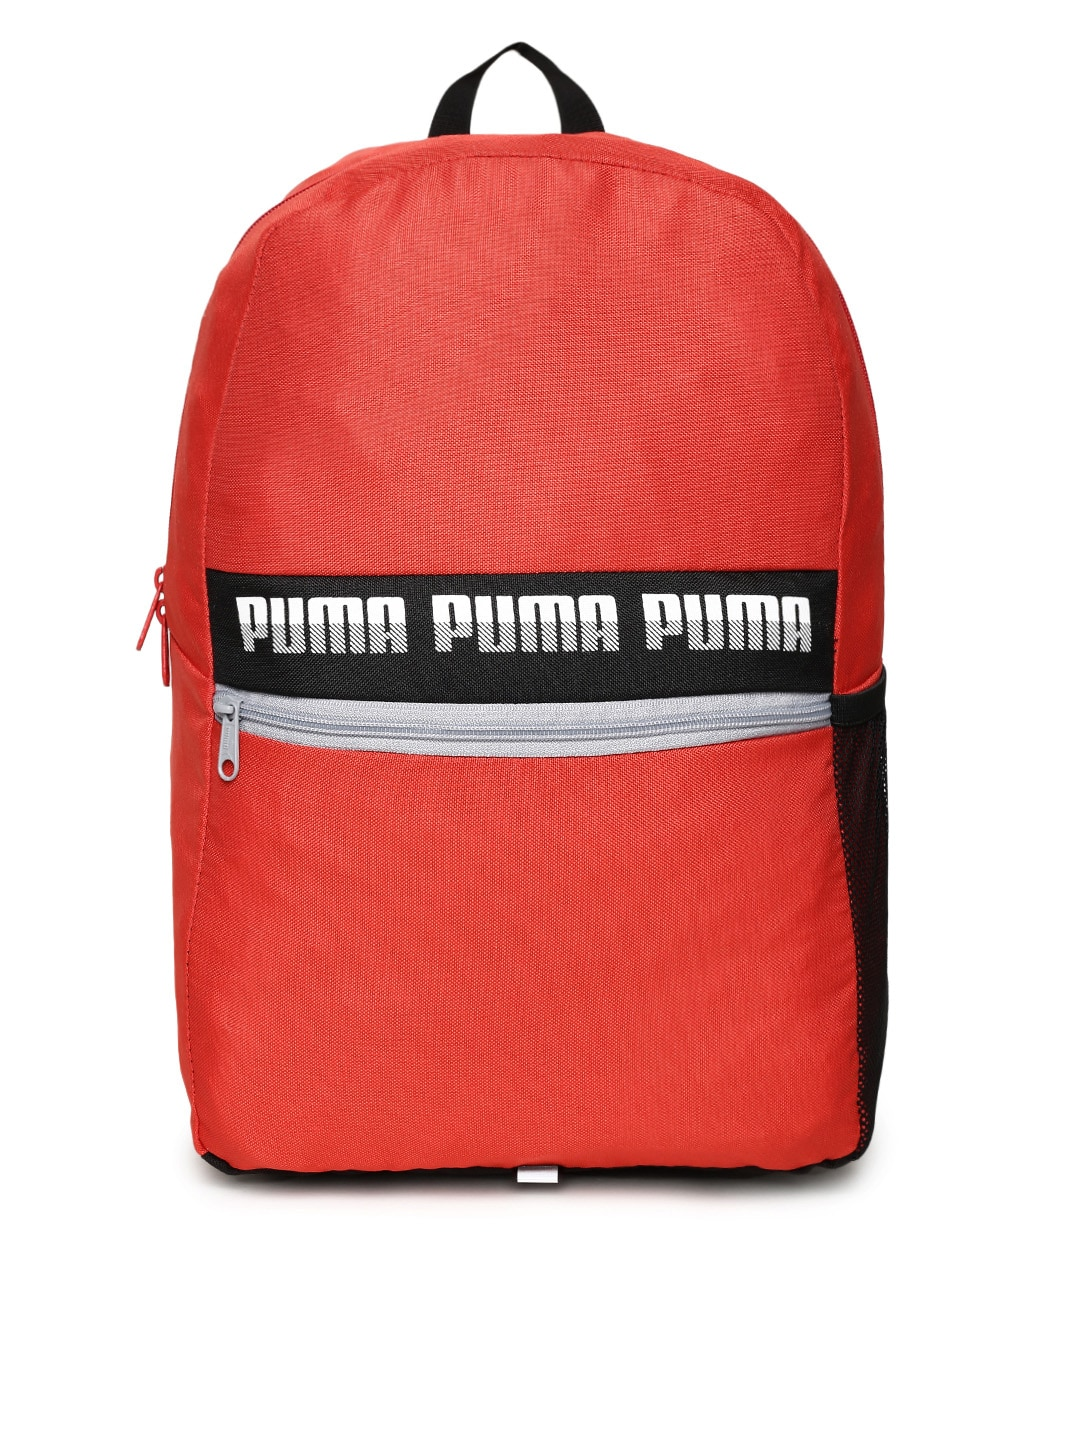 d86495d7a66 Puma Bags For Men - Buy Men s Puma Bags Online from Myntra